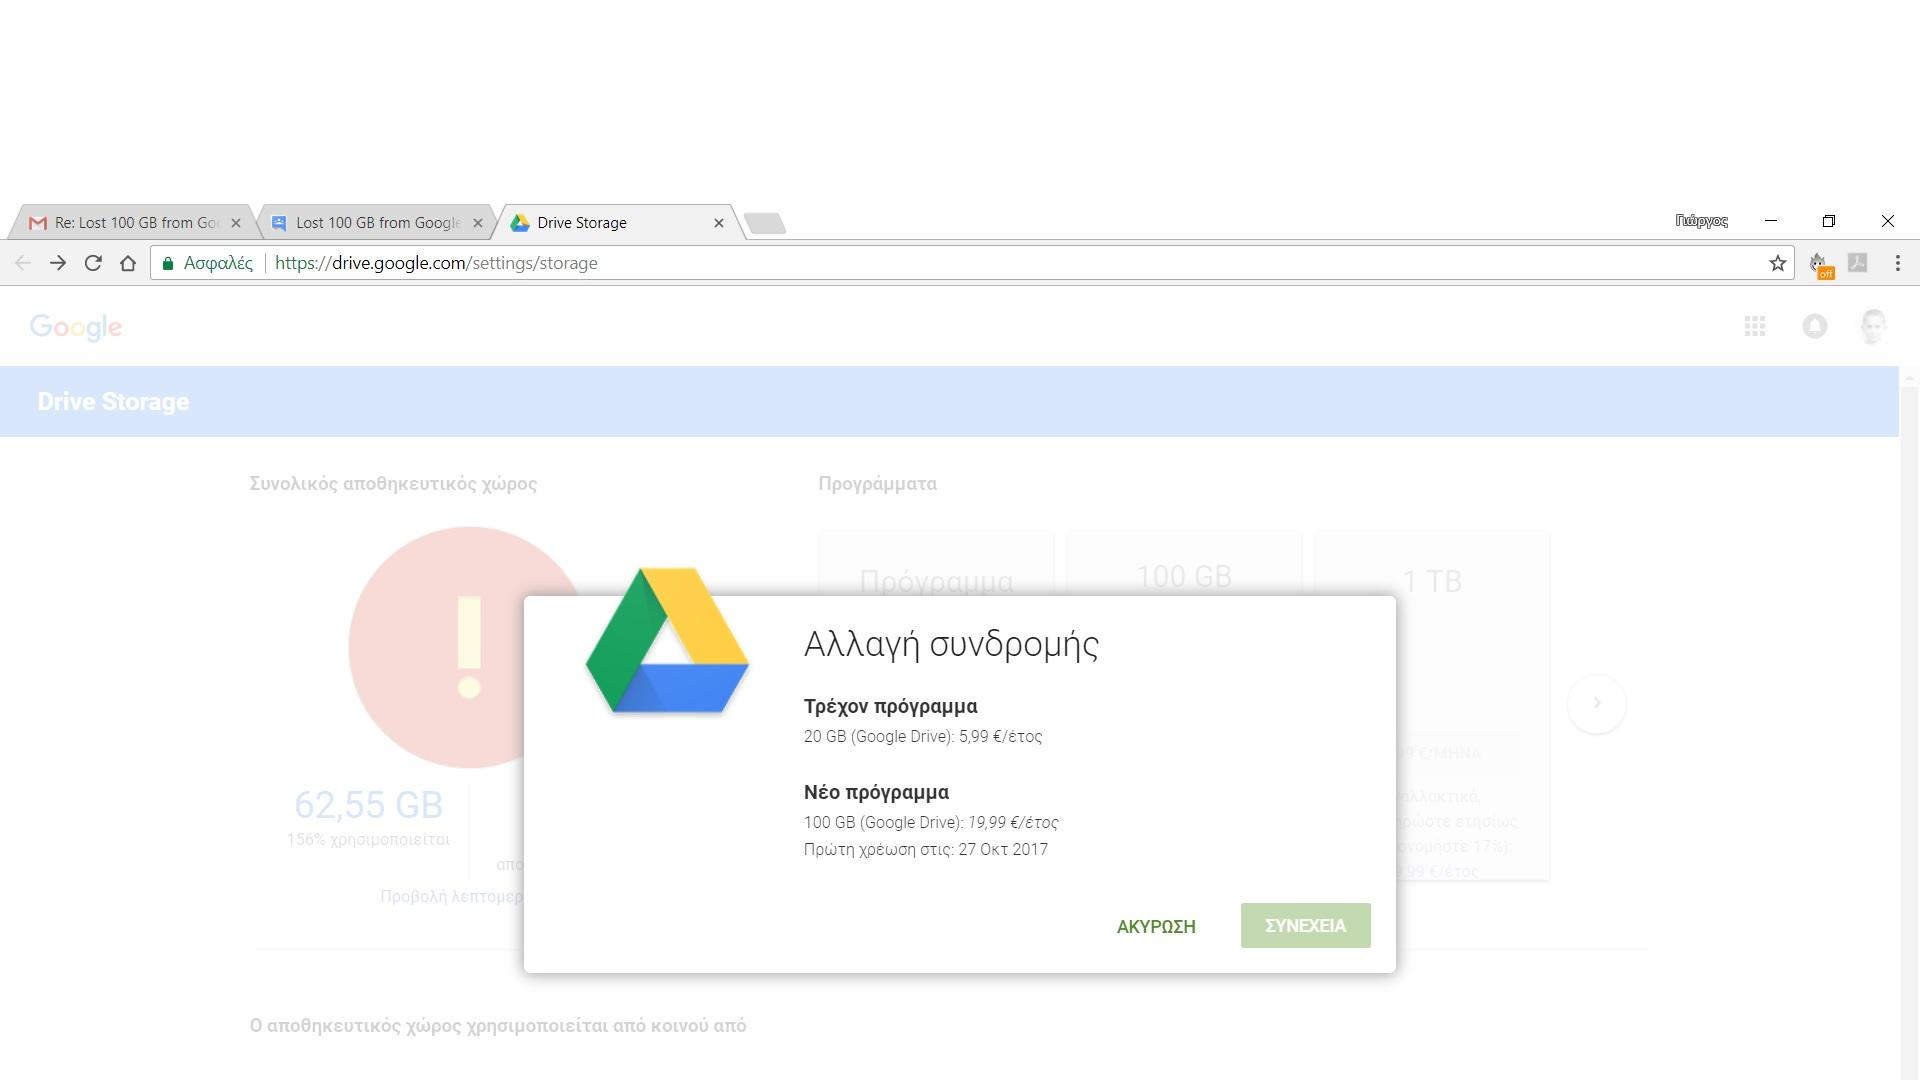 Lost 100 GB from Google Drive Storage Promotion Local Guides